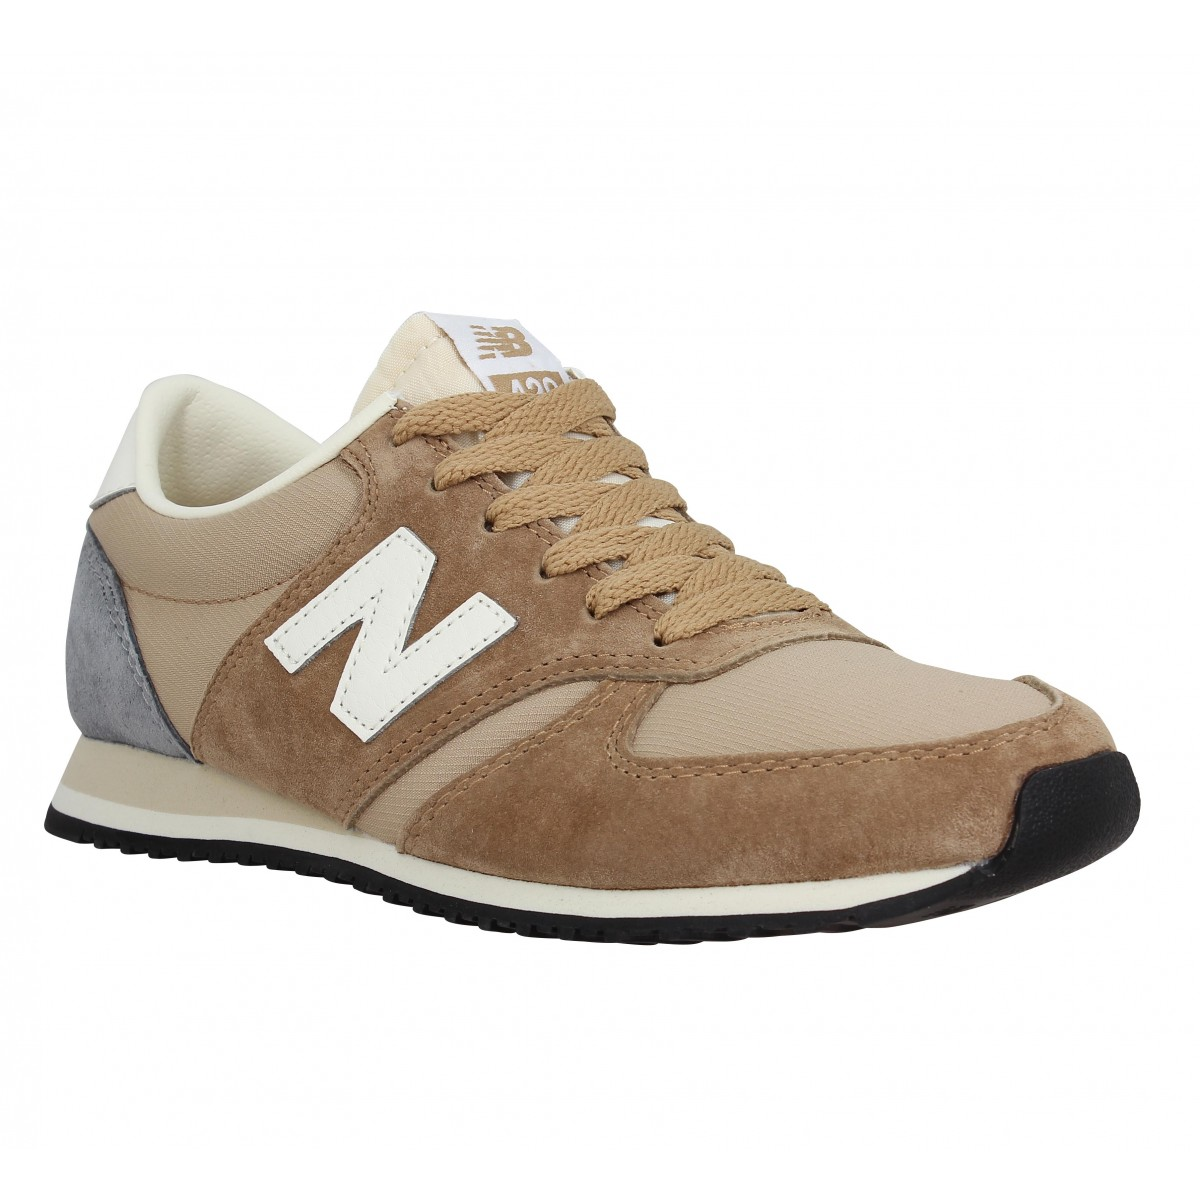 Baskets NEW BALANCE 420 velours + toile Homme Beige + Gris